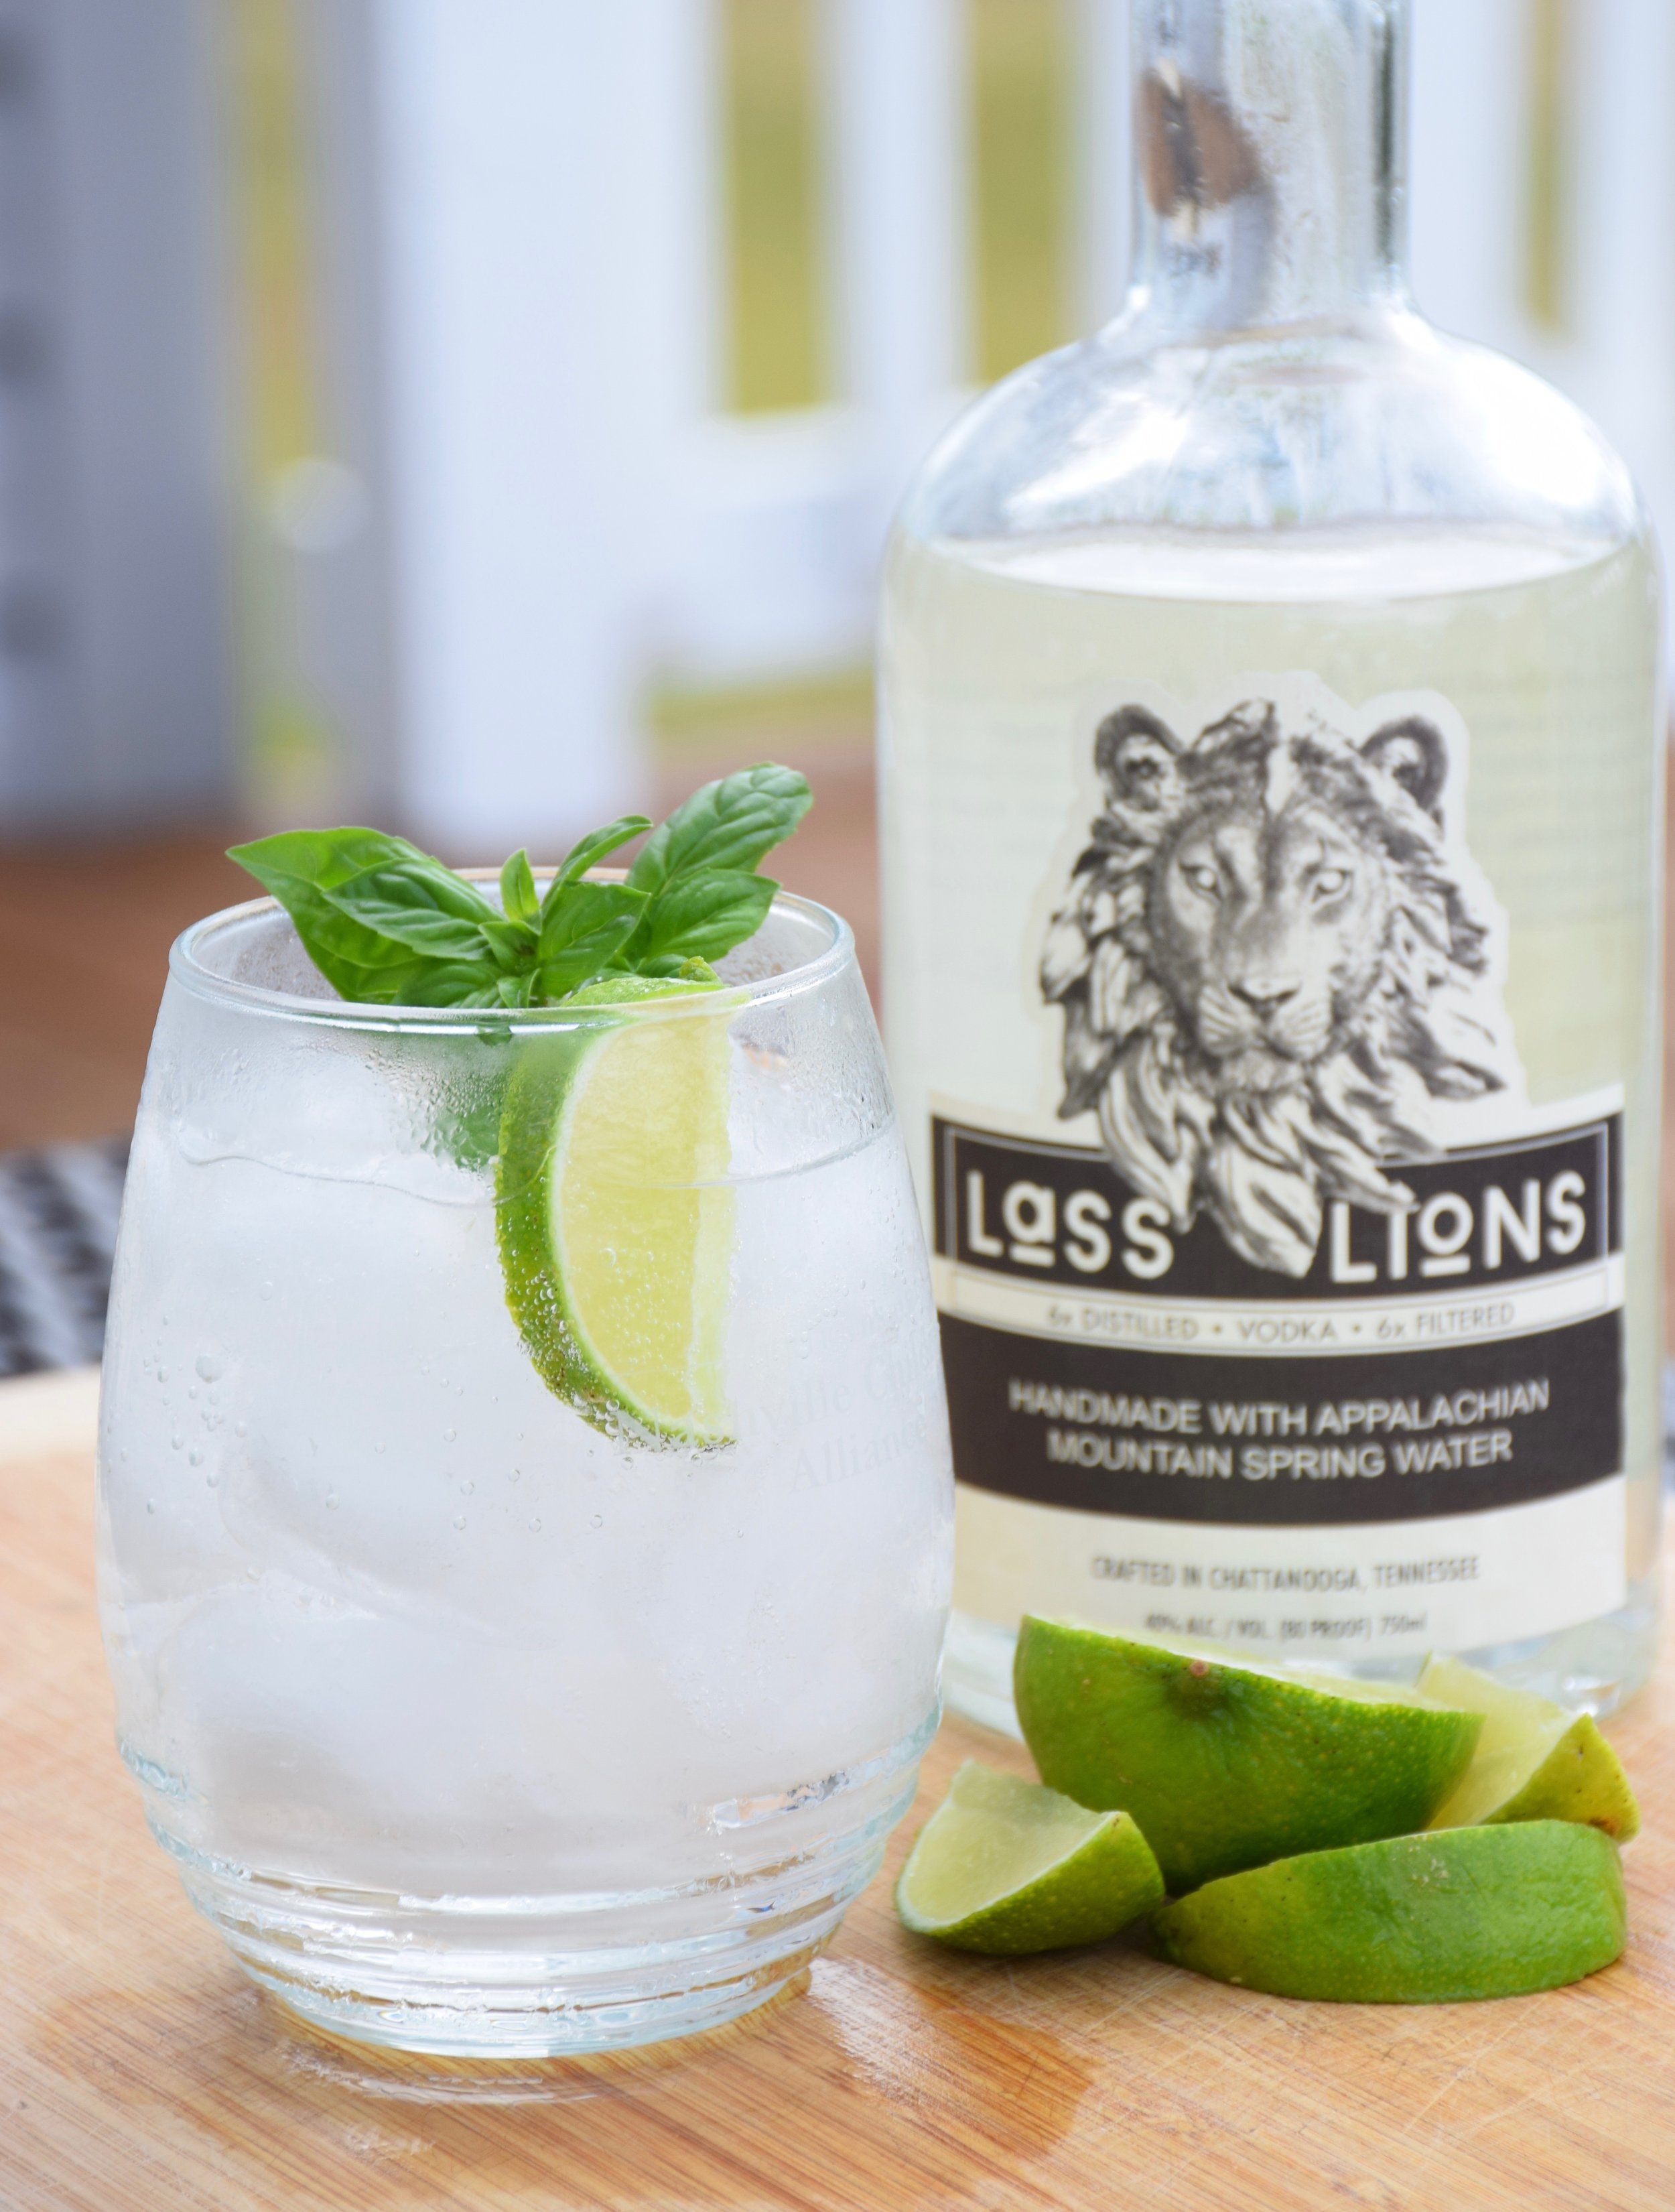 Summer Mineral - Ingredients:·1.5 oz Lass & Lions craft vodka·4 oz. sparkling mineral water·sliced lime squeezedCraft:Use a lowball glass and fill partly with ice. Combine ingredients in glass and stir. Garnish with sliced lime and mint.